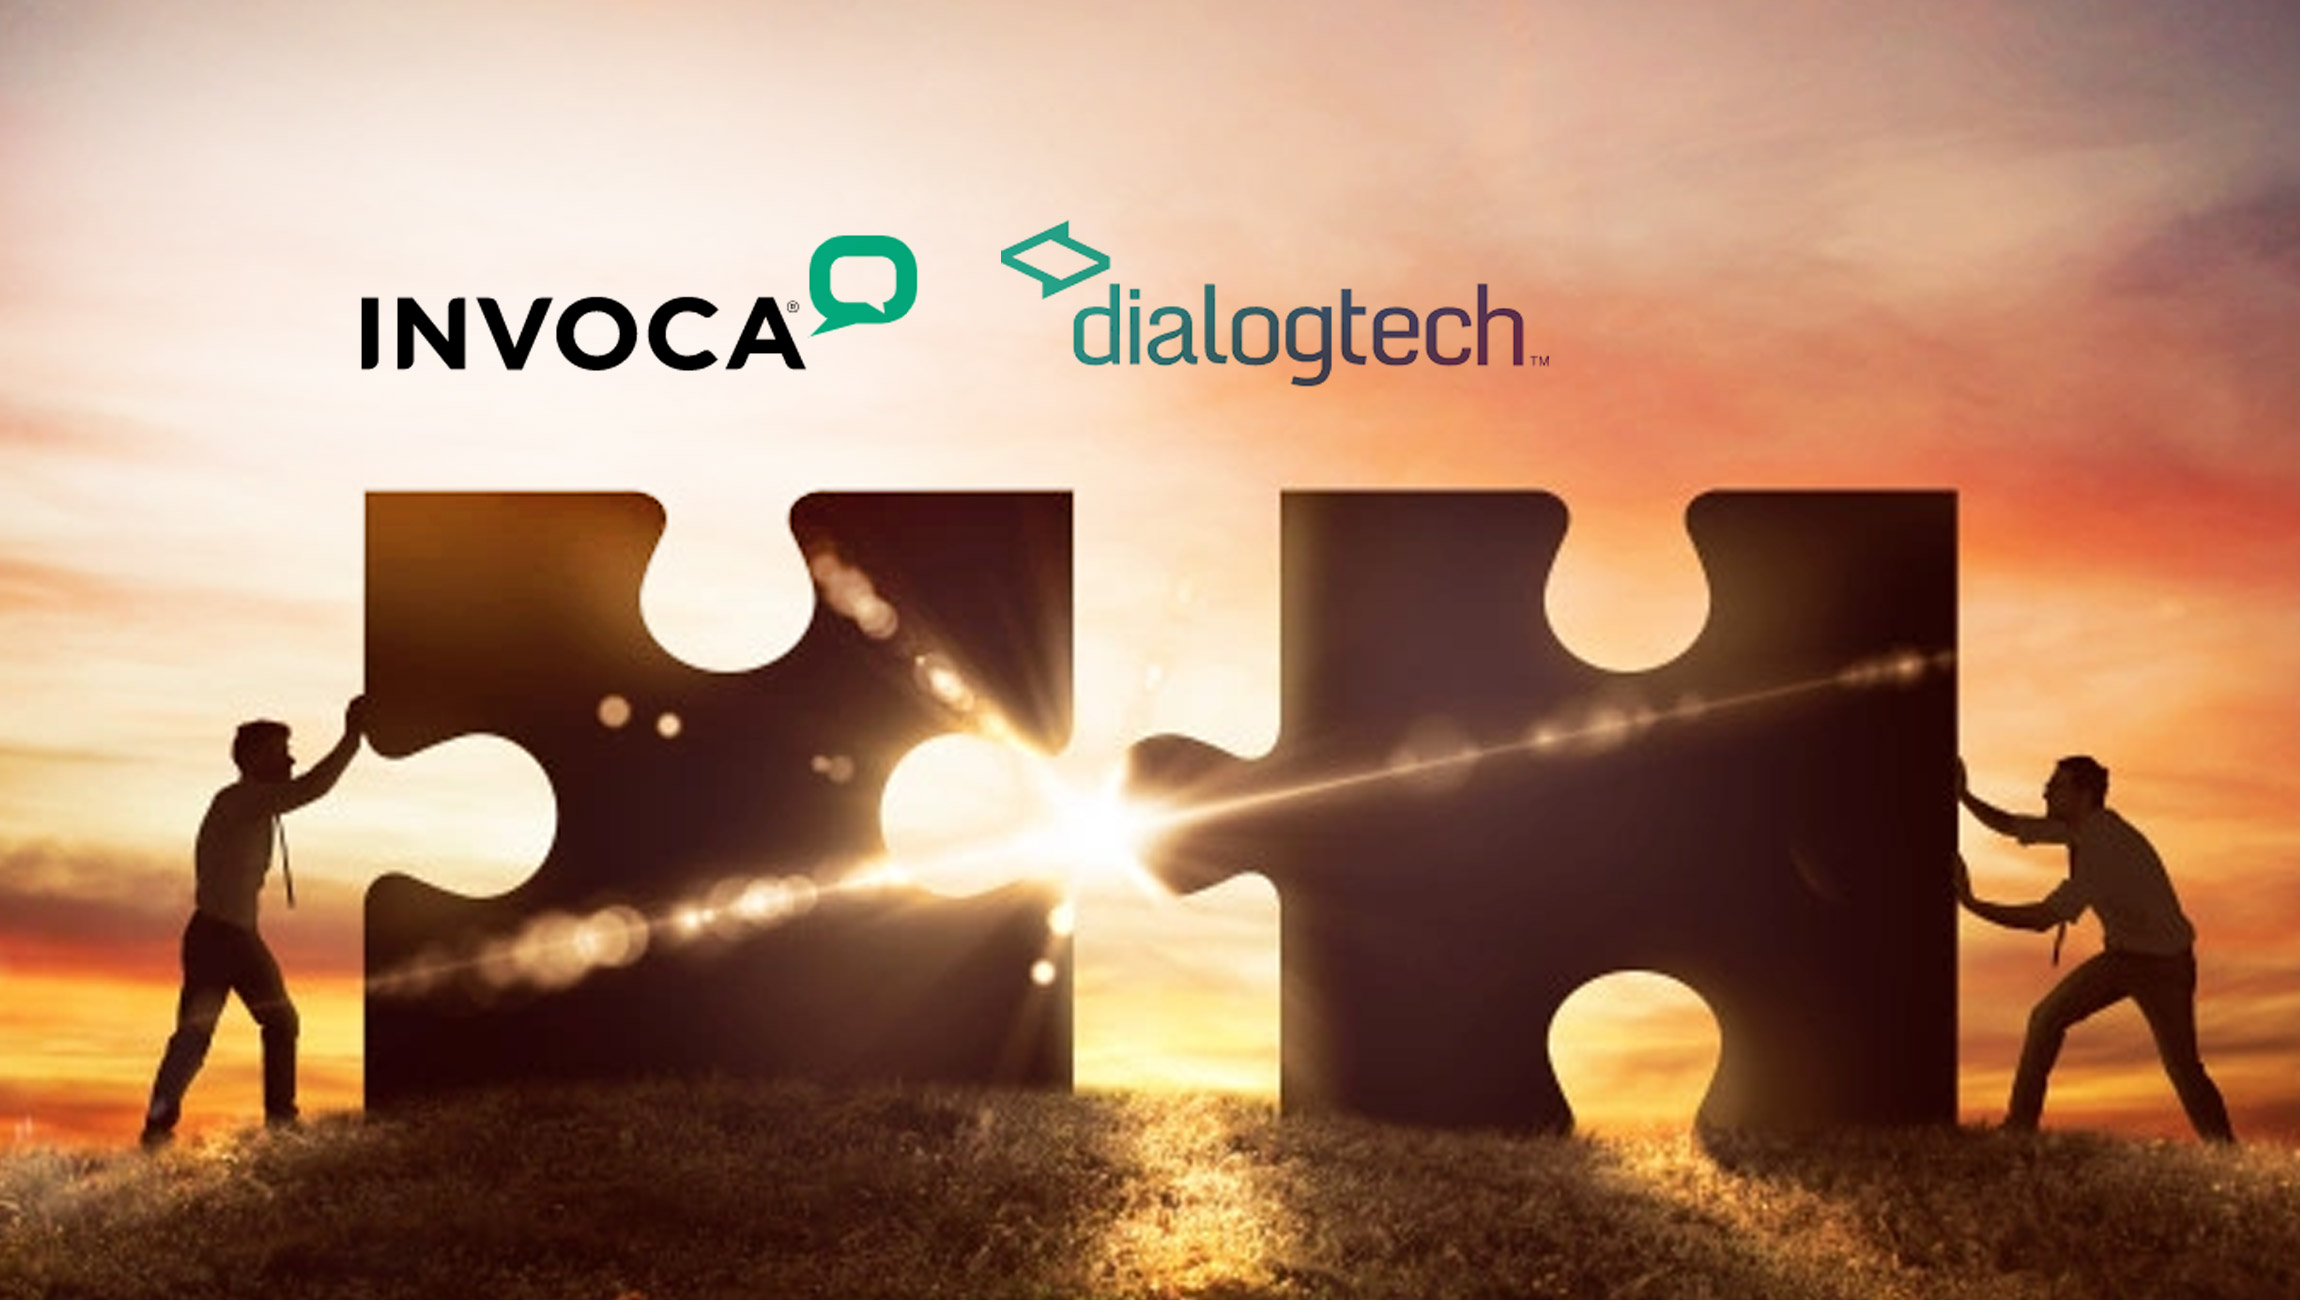 Invoca Acquires DialogTech to Become the #1 Conversation Intelligence Platform with $100M in Revenue 1